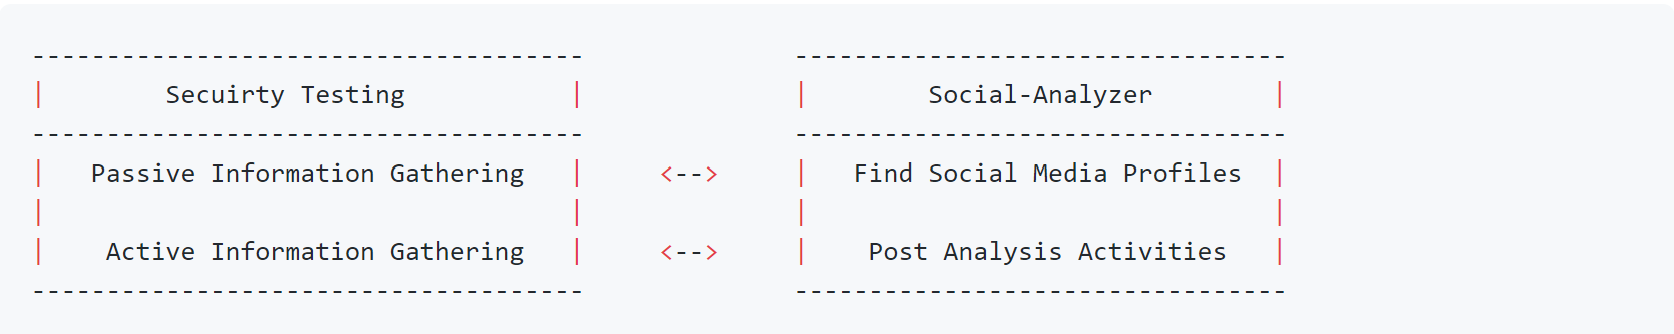 social-analyzer v2.17 releases: API for analyzing & finding a person profile across +300 social media websites